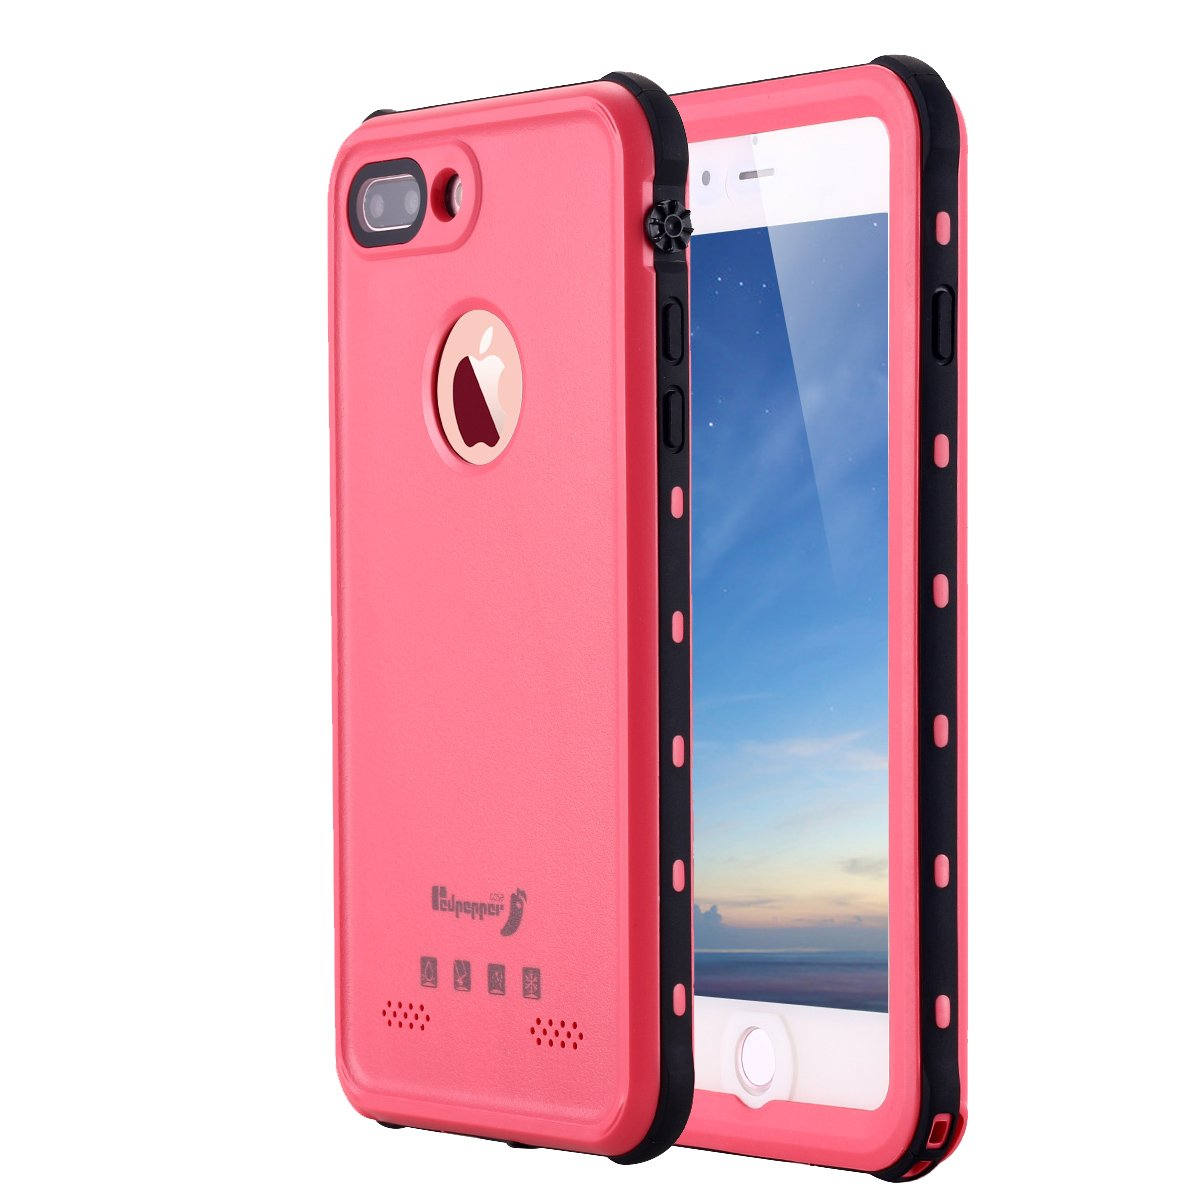 iPhone 8 Plus Waterproof Case,iPhone 7 Plus Waterproof Case, LONTECT IP-68 Waterproof Shockproof Dust Proof Snow Proof Full Body Protective Case Cover for Apple iPhone 8 Plus/ 7 Plus 5.5 inch (Pink)